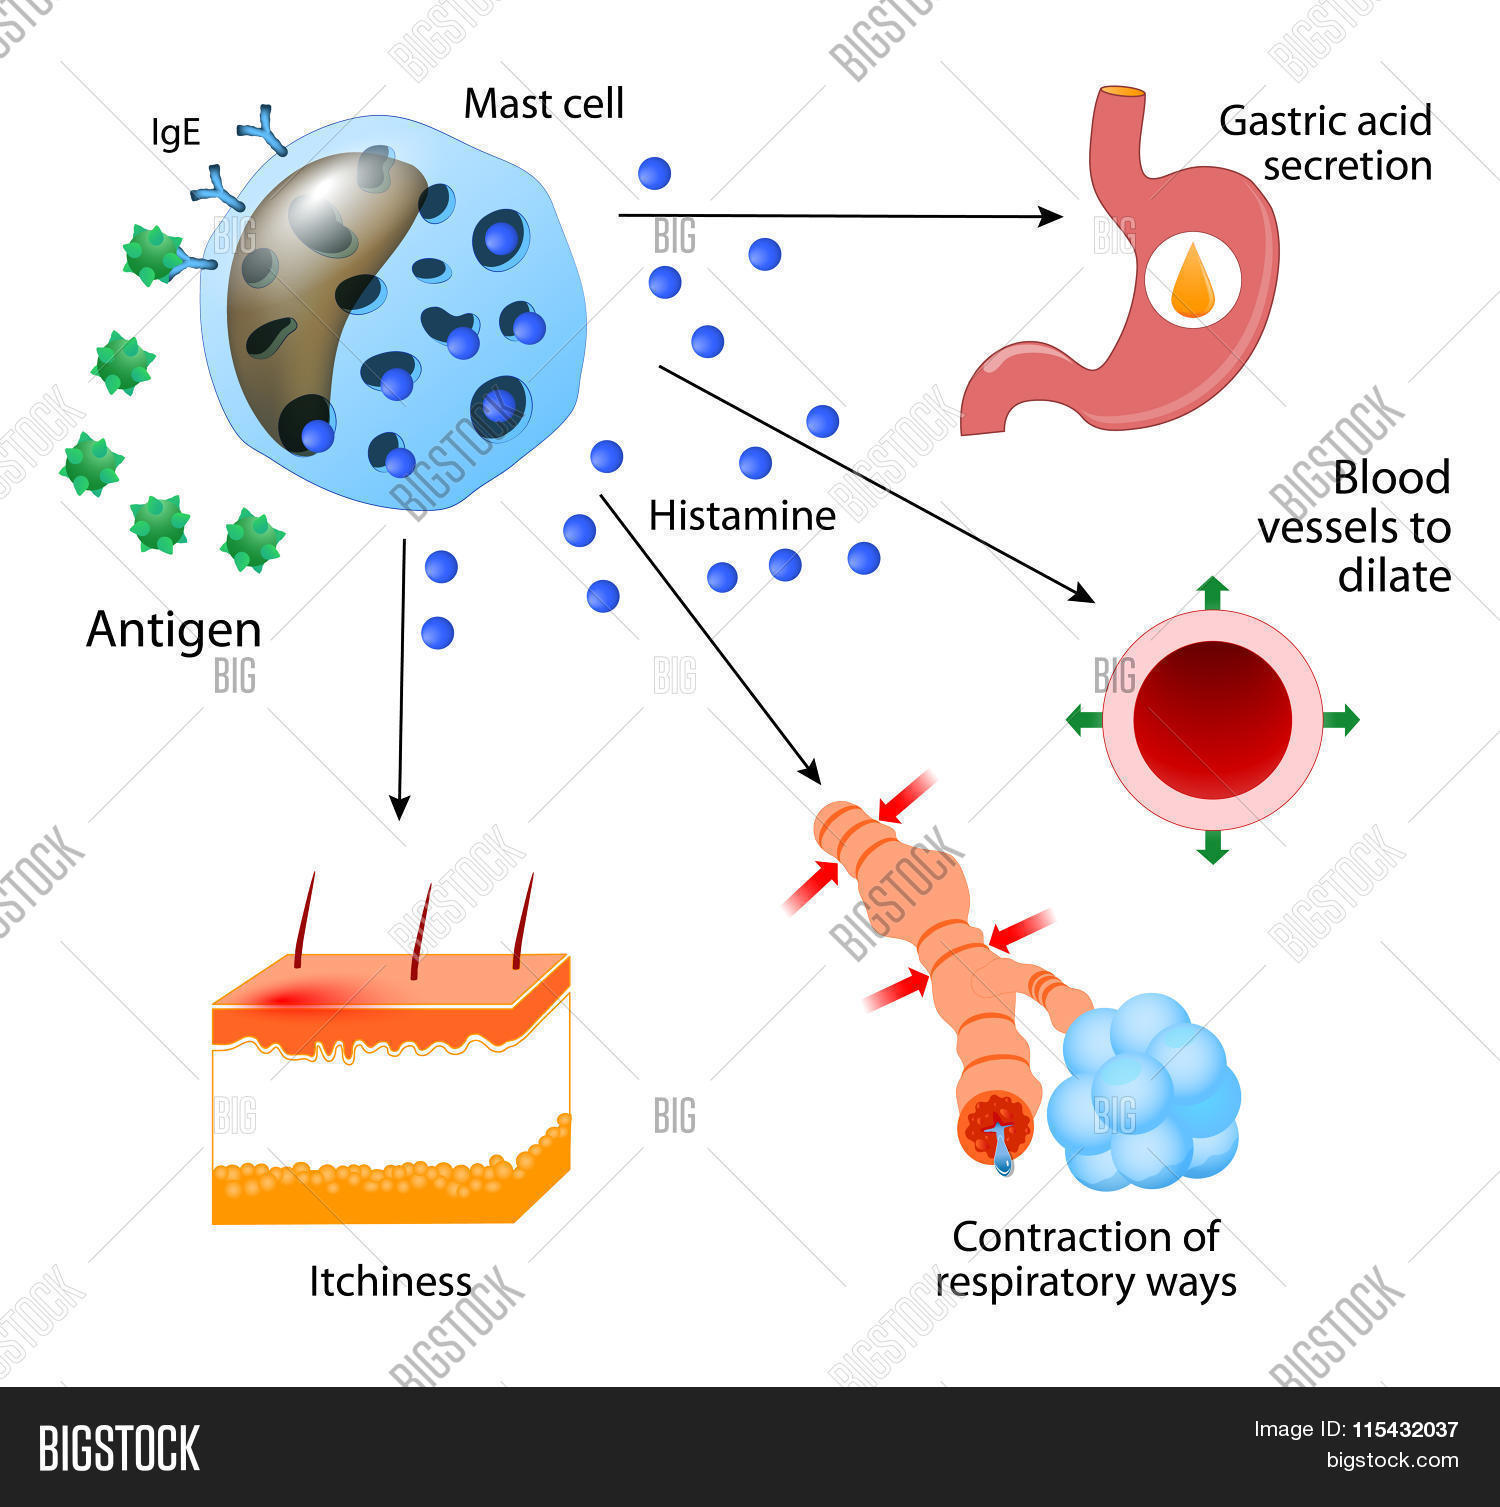 acid,allergen,allergic,allergy,anaphylactic,anaphylaxis,anatomy,antibody,antigen,asthma,blood,care,cell,degranulation,diagram,dilate,disease,gastric,health,healthcare,histamine,human,ige,immune,immunology,itchiness,lymphocyte,mast,mechanism,medical,medicine,reaction,receptor,release,science,secretion,shock,skin,stomach,system,vessels,white